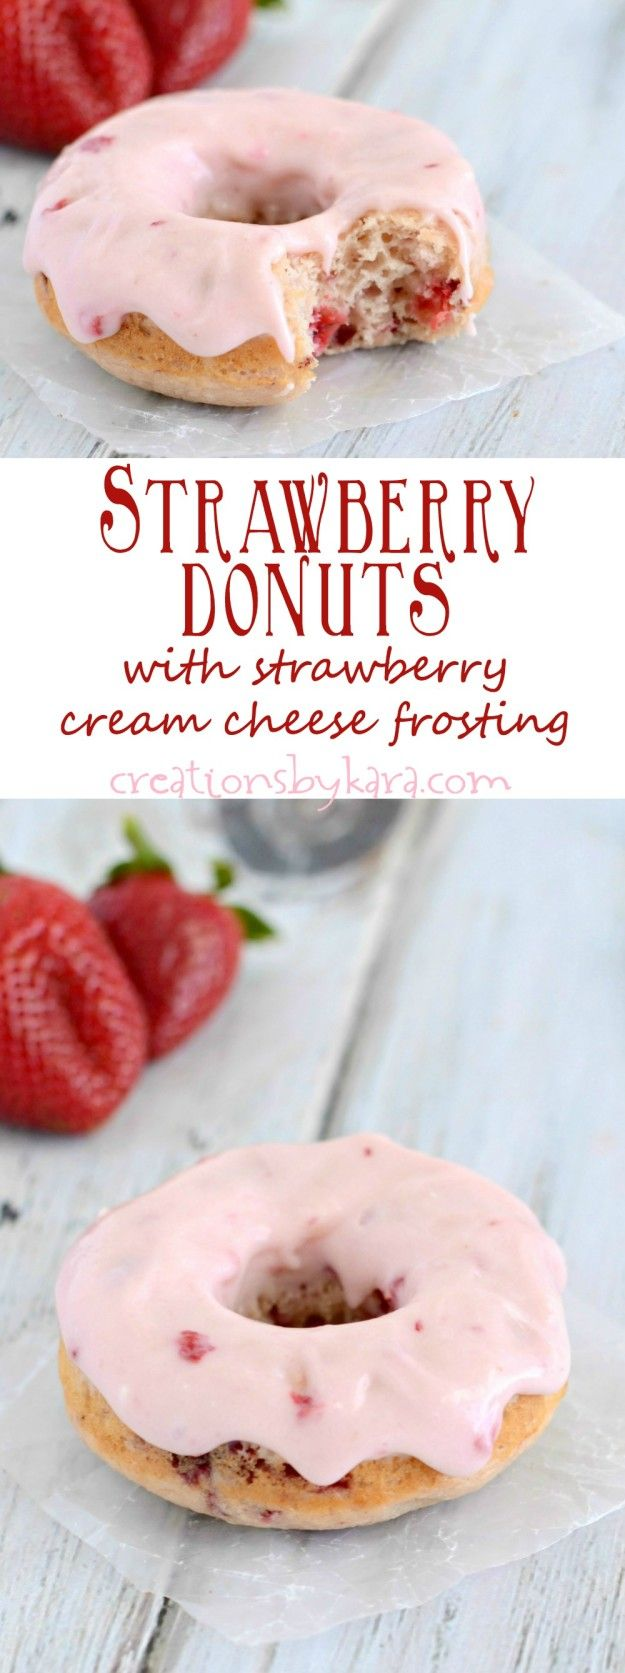 Baked Strawberry Donut Recipe - These donuts are simple to make, bursting with berries, and topped with an incredible strawberry frosting!